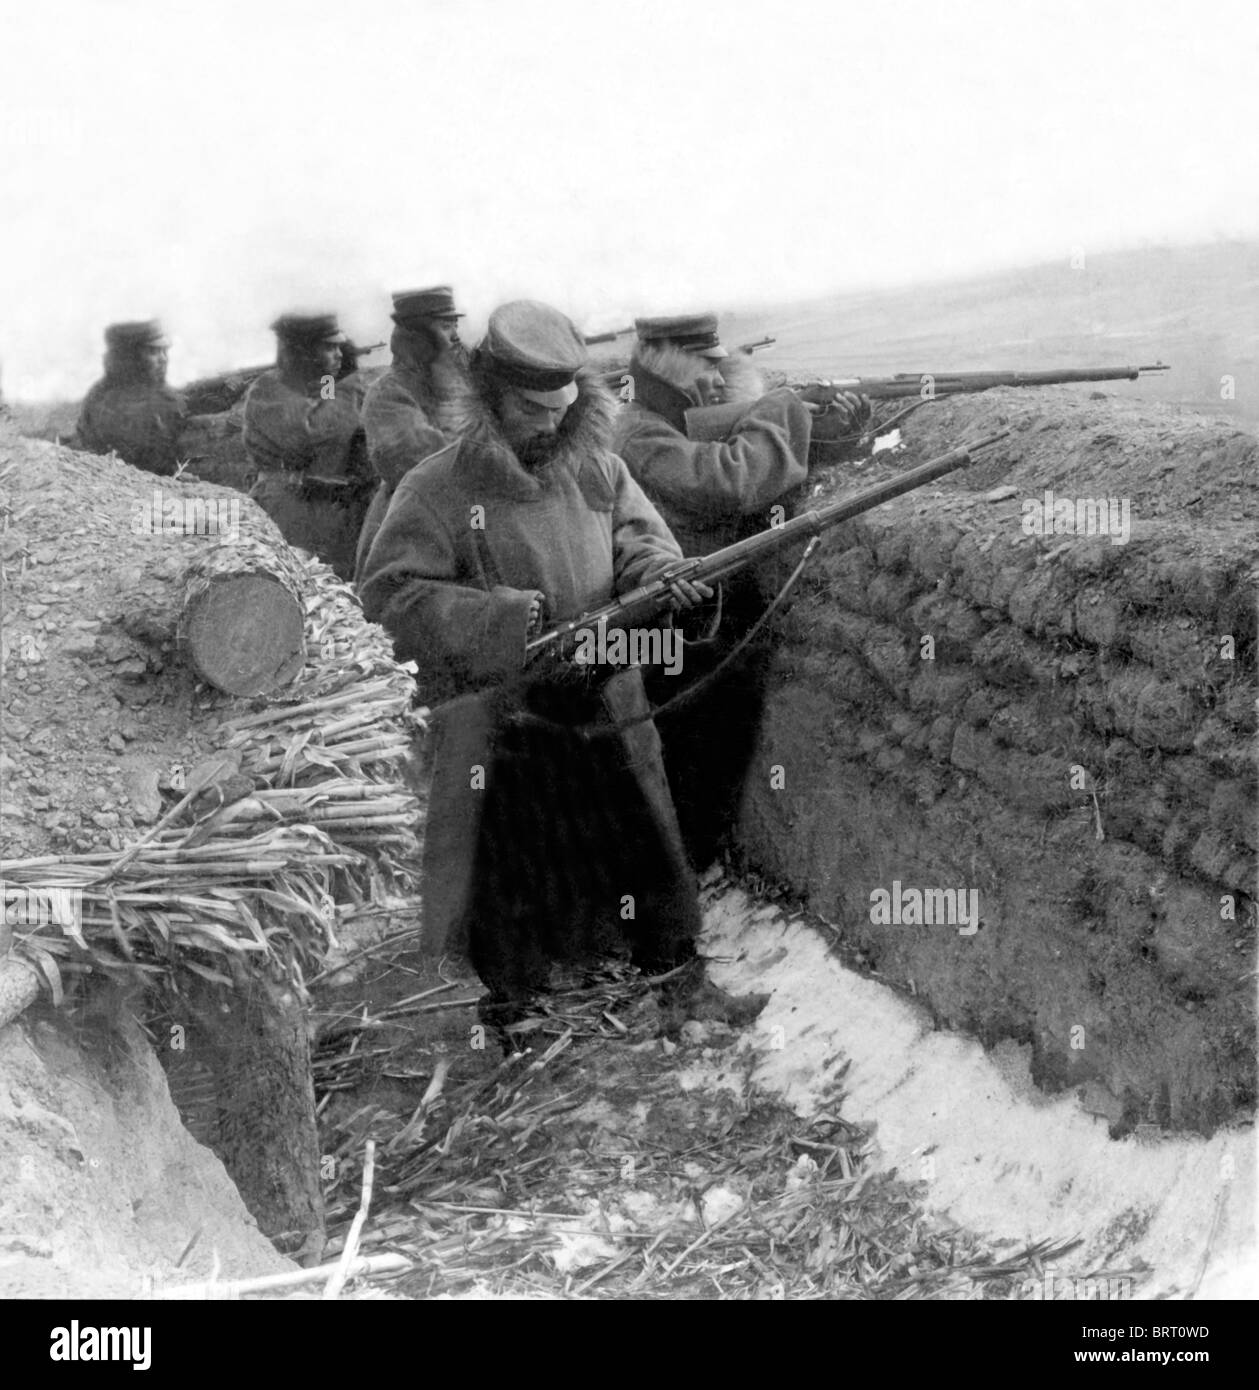 Soldiers in a trench, historic photograph, around 1915, First World War - Stock Image